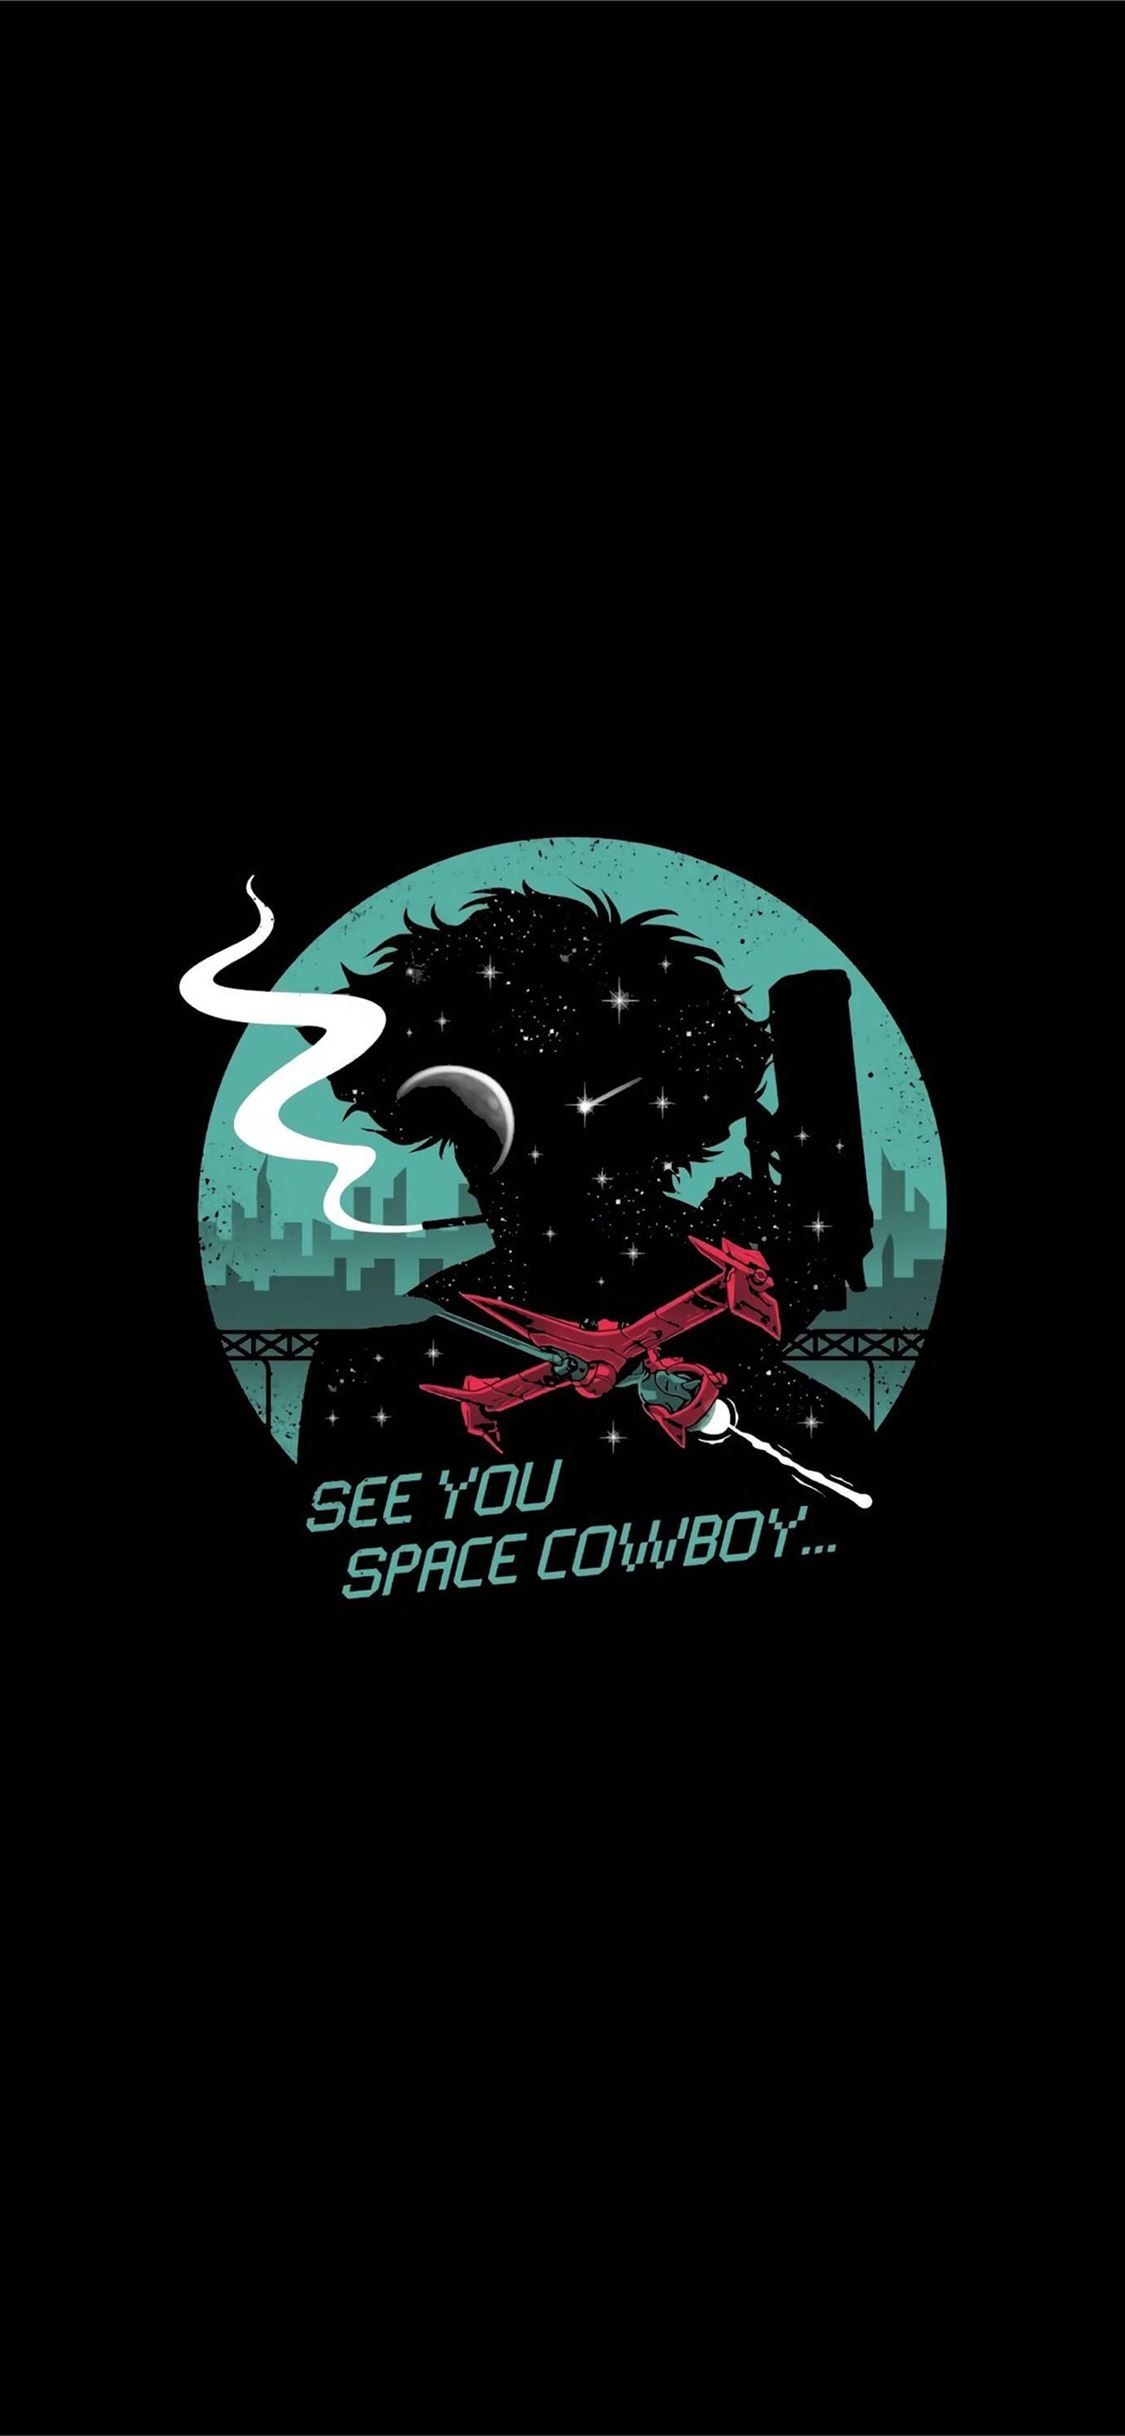 See You Space Cowboy Cowboybebop Trends Iphone11wallpaper In 2020 Cowboy Bebop Wallpapers See You Space Cowboy Space Cowboys